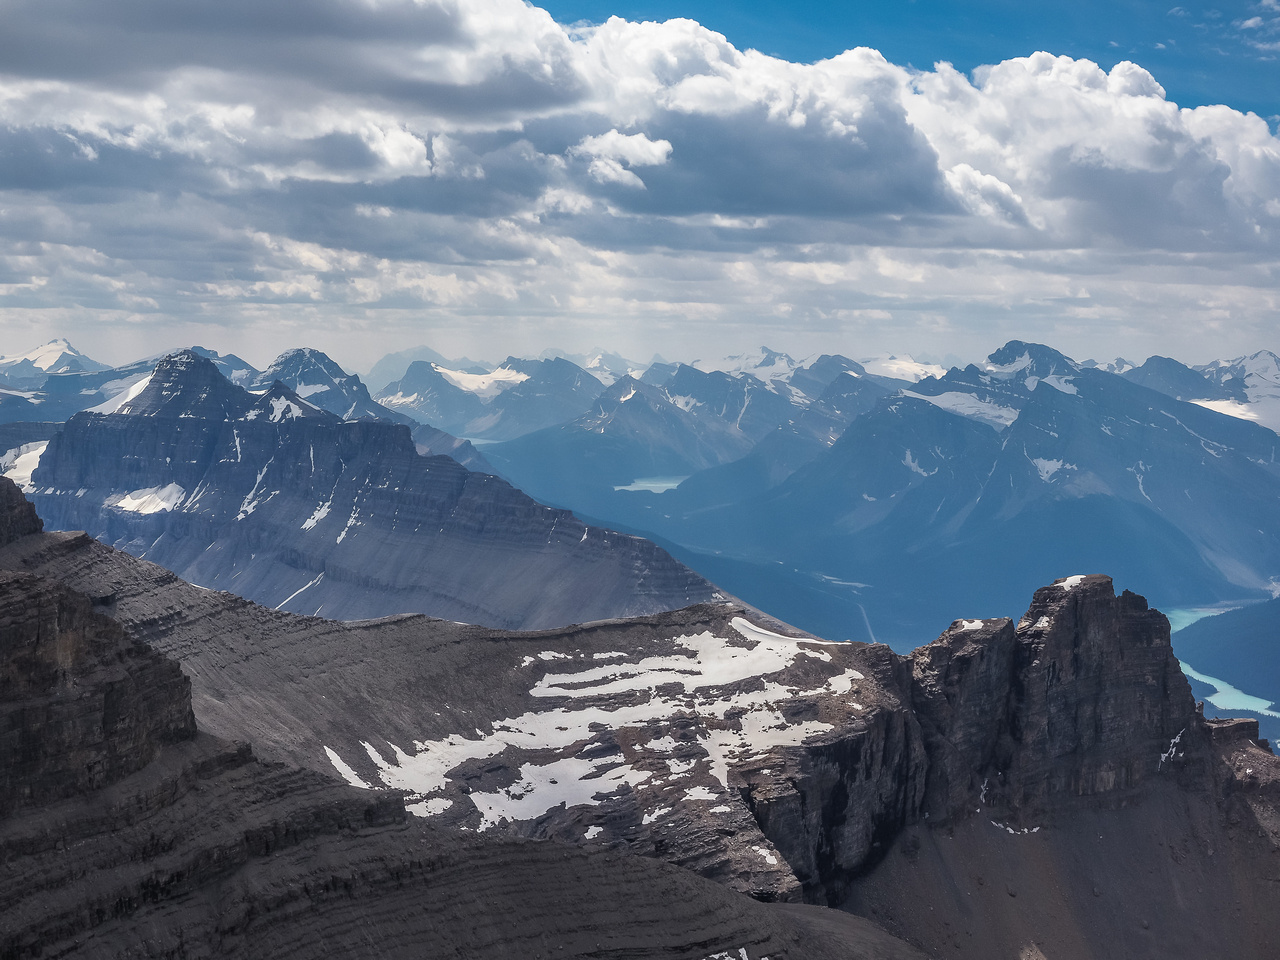 Distant views towards the Wapta Icefields with Mount Noyes in the foreground left.